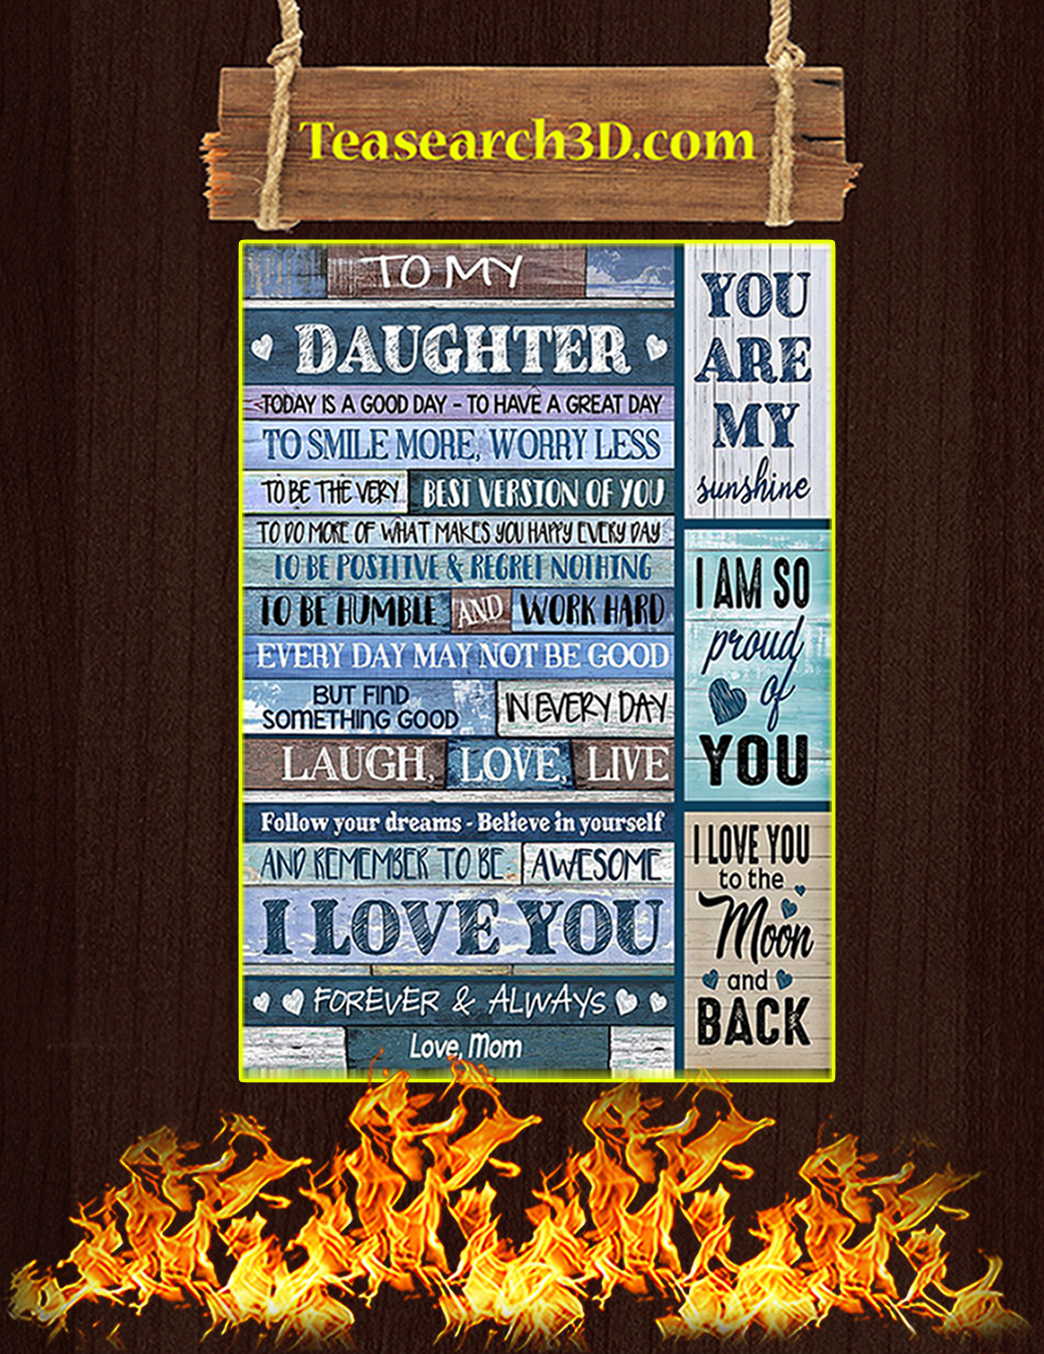 To my daughter today is a good day love mom poster A1